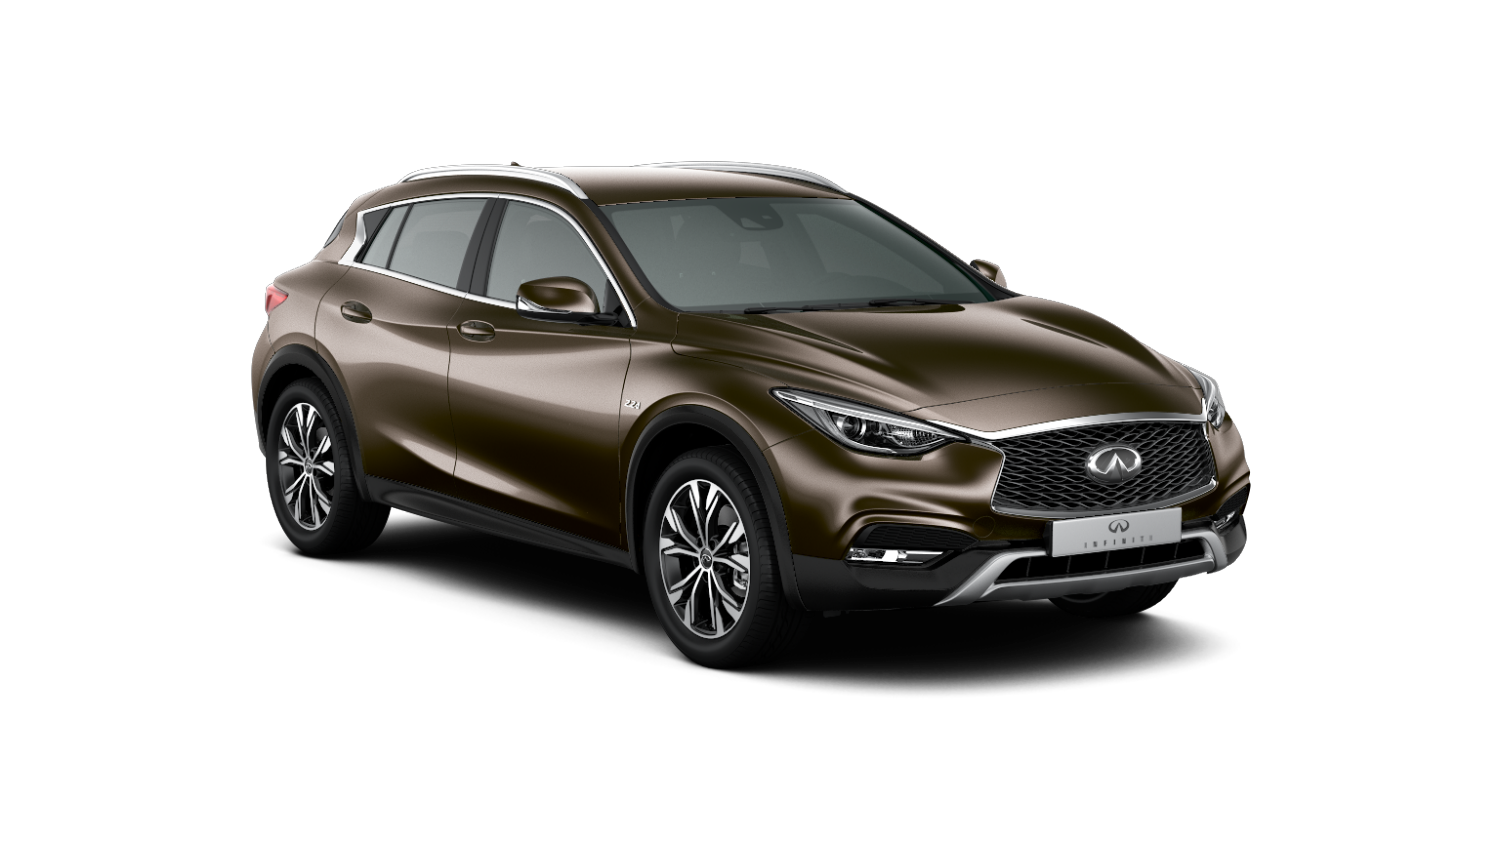 Infiniti Qx30 Car Offers New Premium Active Crossover